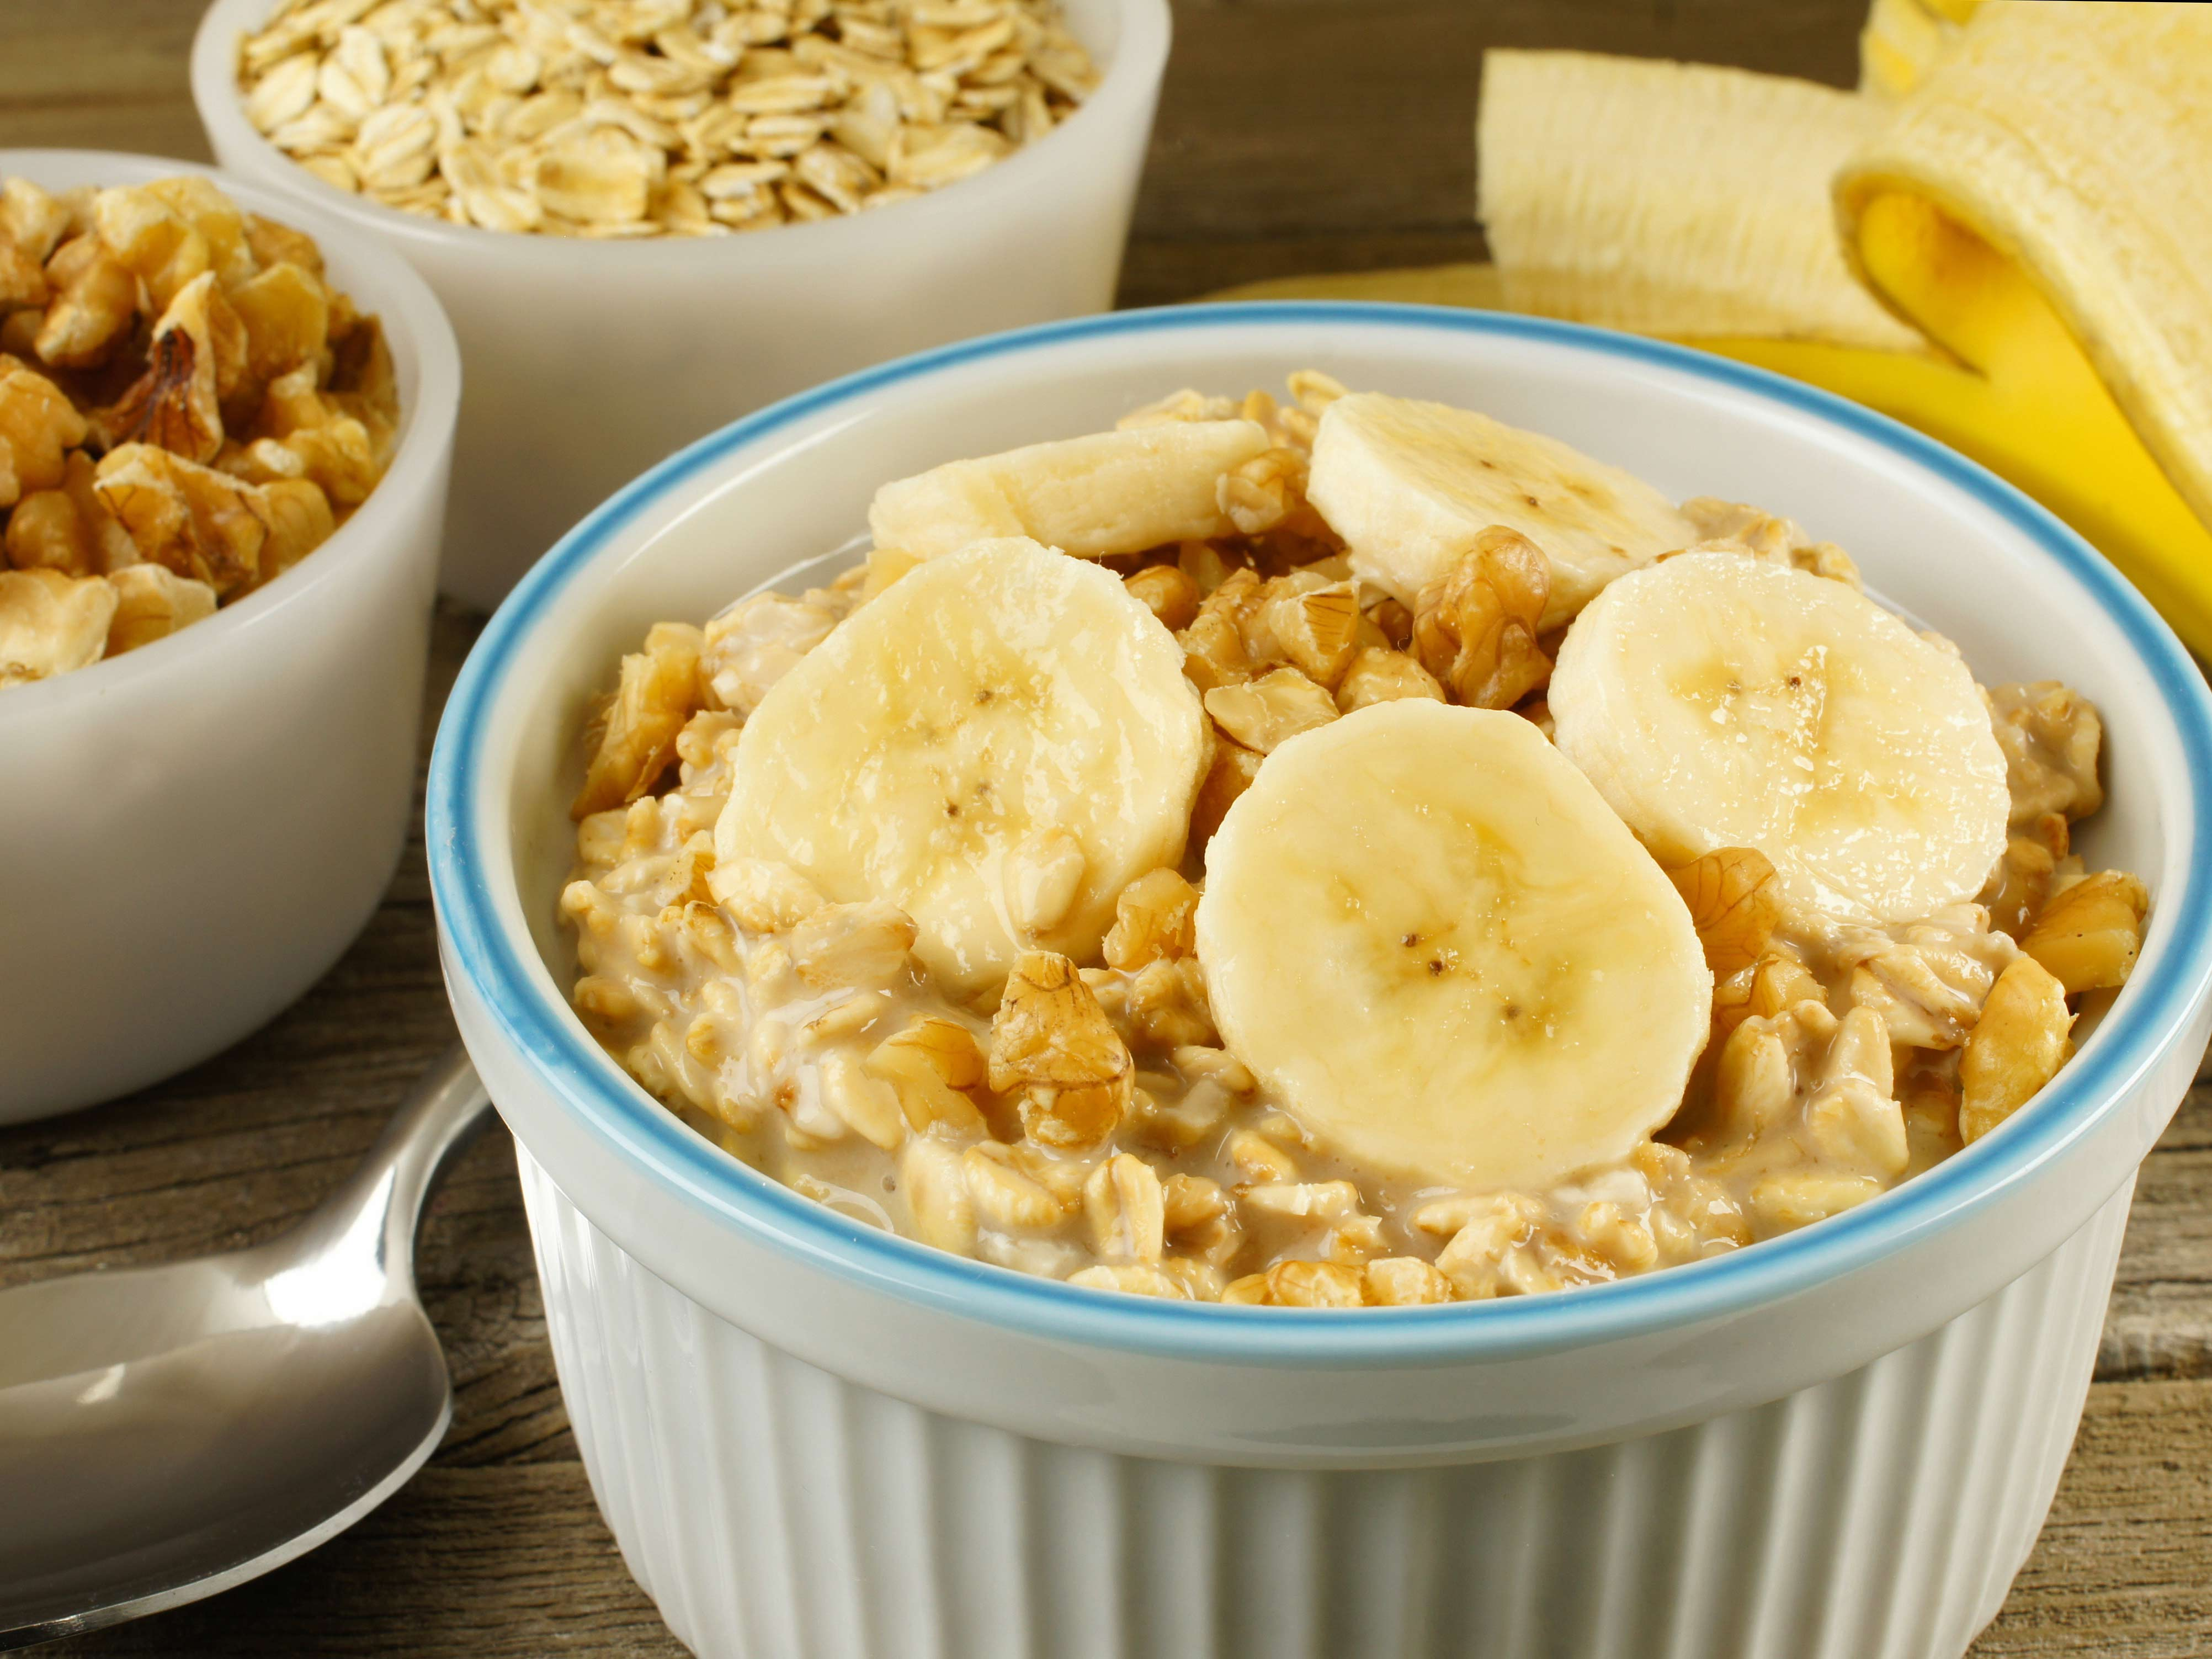 In the kitchen with Kelley: Slow cooker oatmeal with bananas and nuts